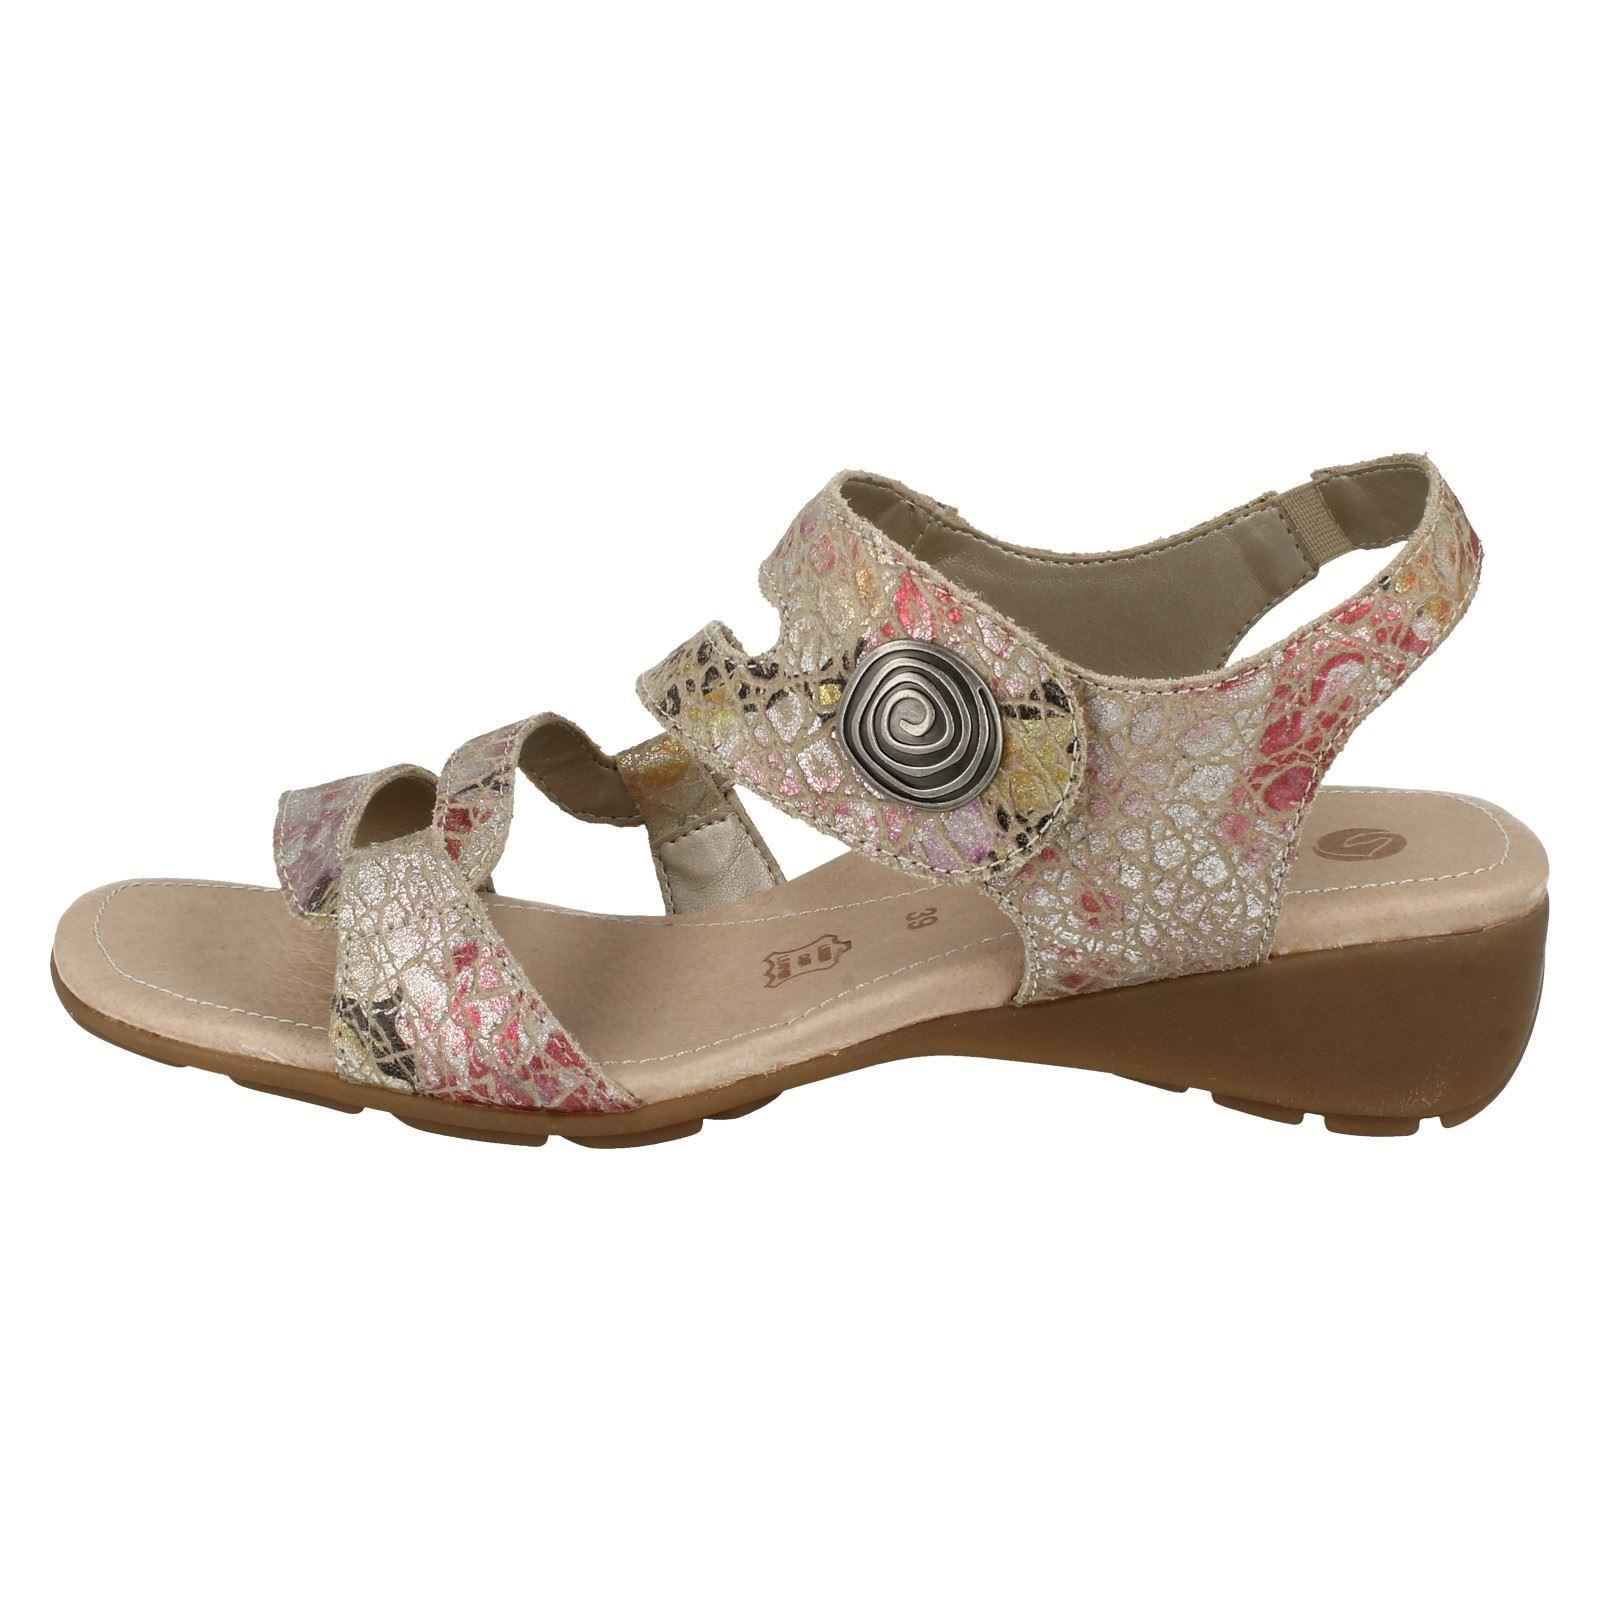 Sandals beige amp; Beige Loop Heel Sling Block R5247 Combi Low Leather Ladies Hook Remonte Back fw6xqvxX7a